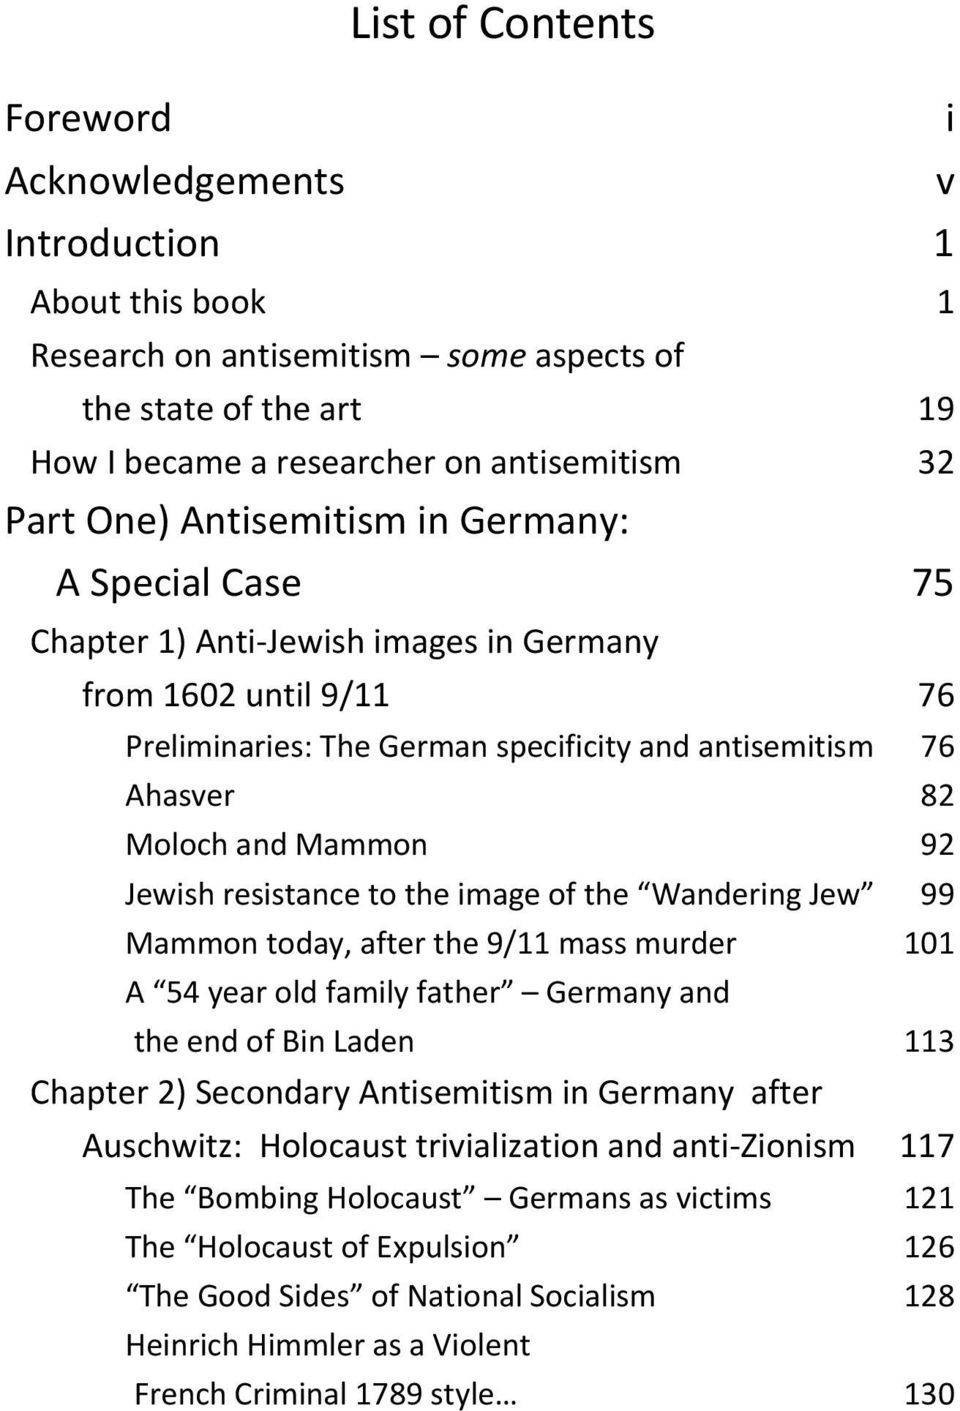 Jewish resistance to the image of the Wandering Jew 99 Mammon today, after the 9/11 mass murder 101 A 54 year old family father Germany and the end of Bin Laden 113 Chapter 2) Secondary Antisemitism